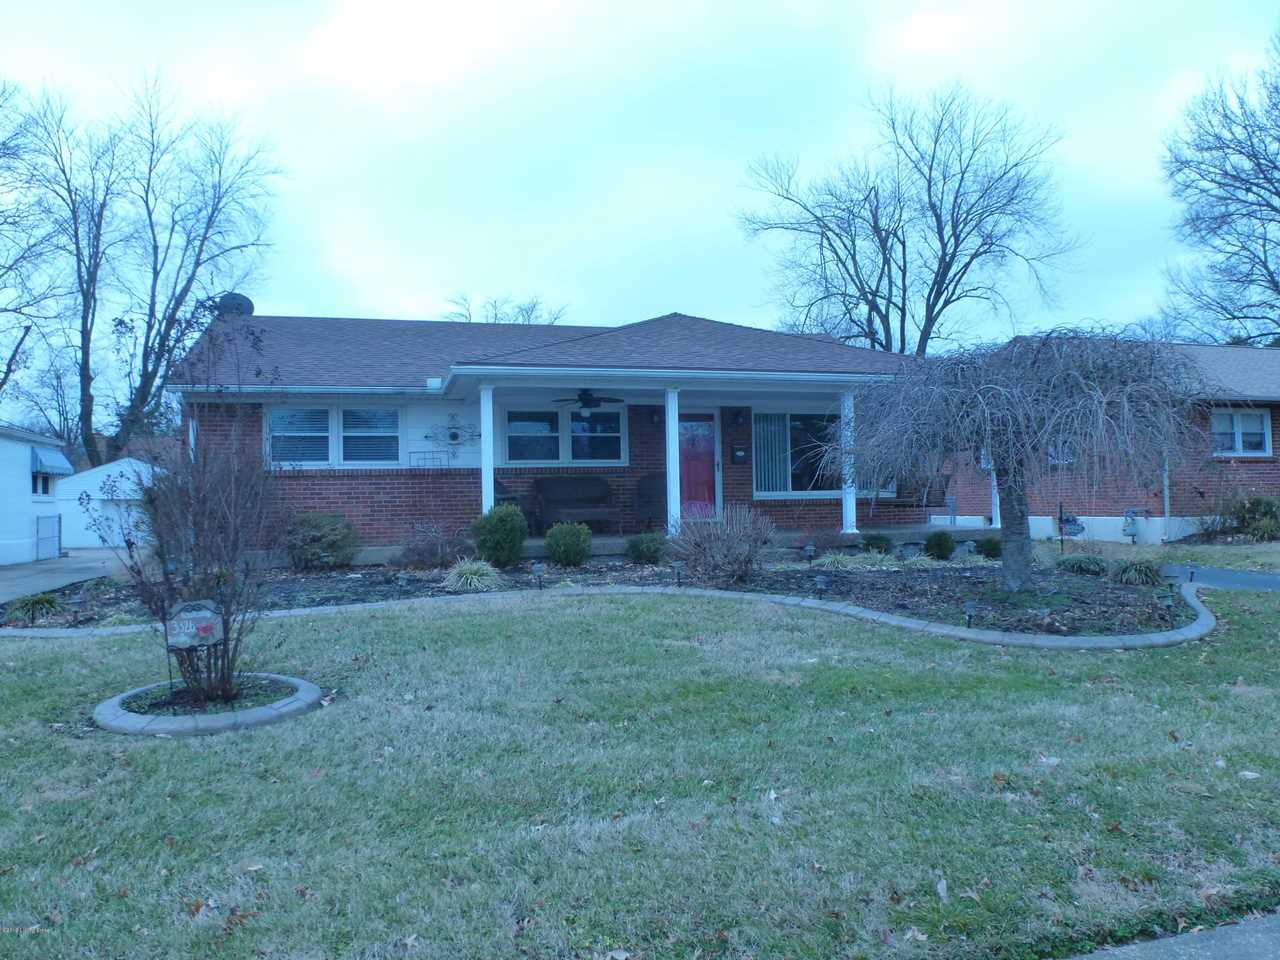 3326 Dean Dr Louisville, KY 40220 | MLS 1522451 Photo 1